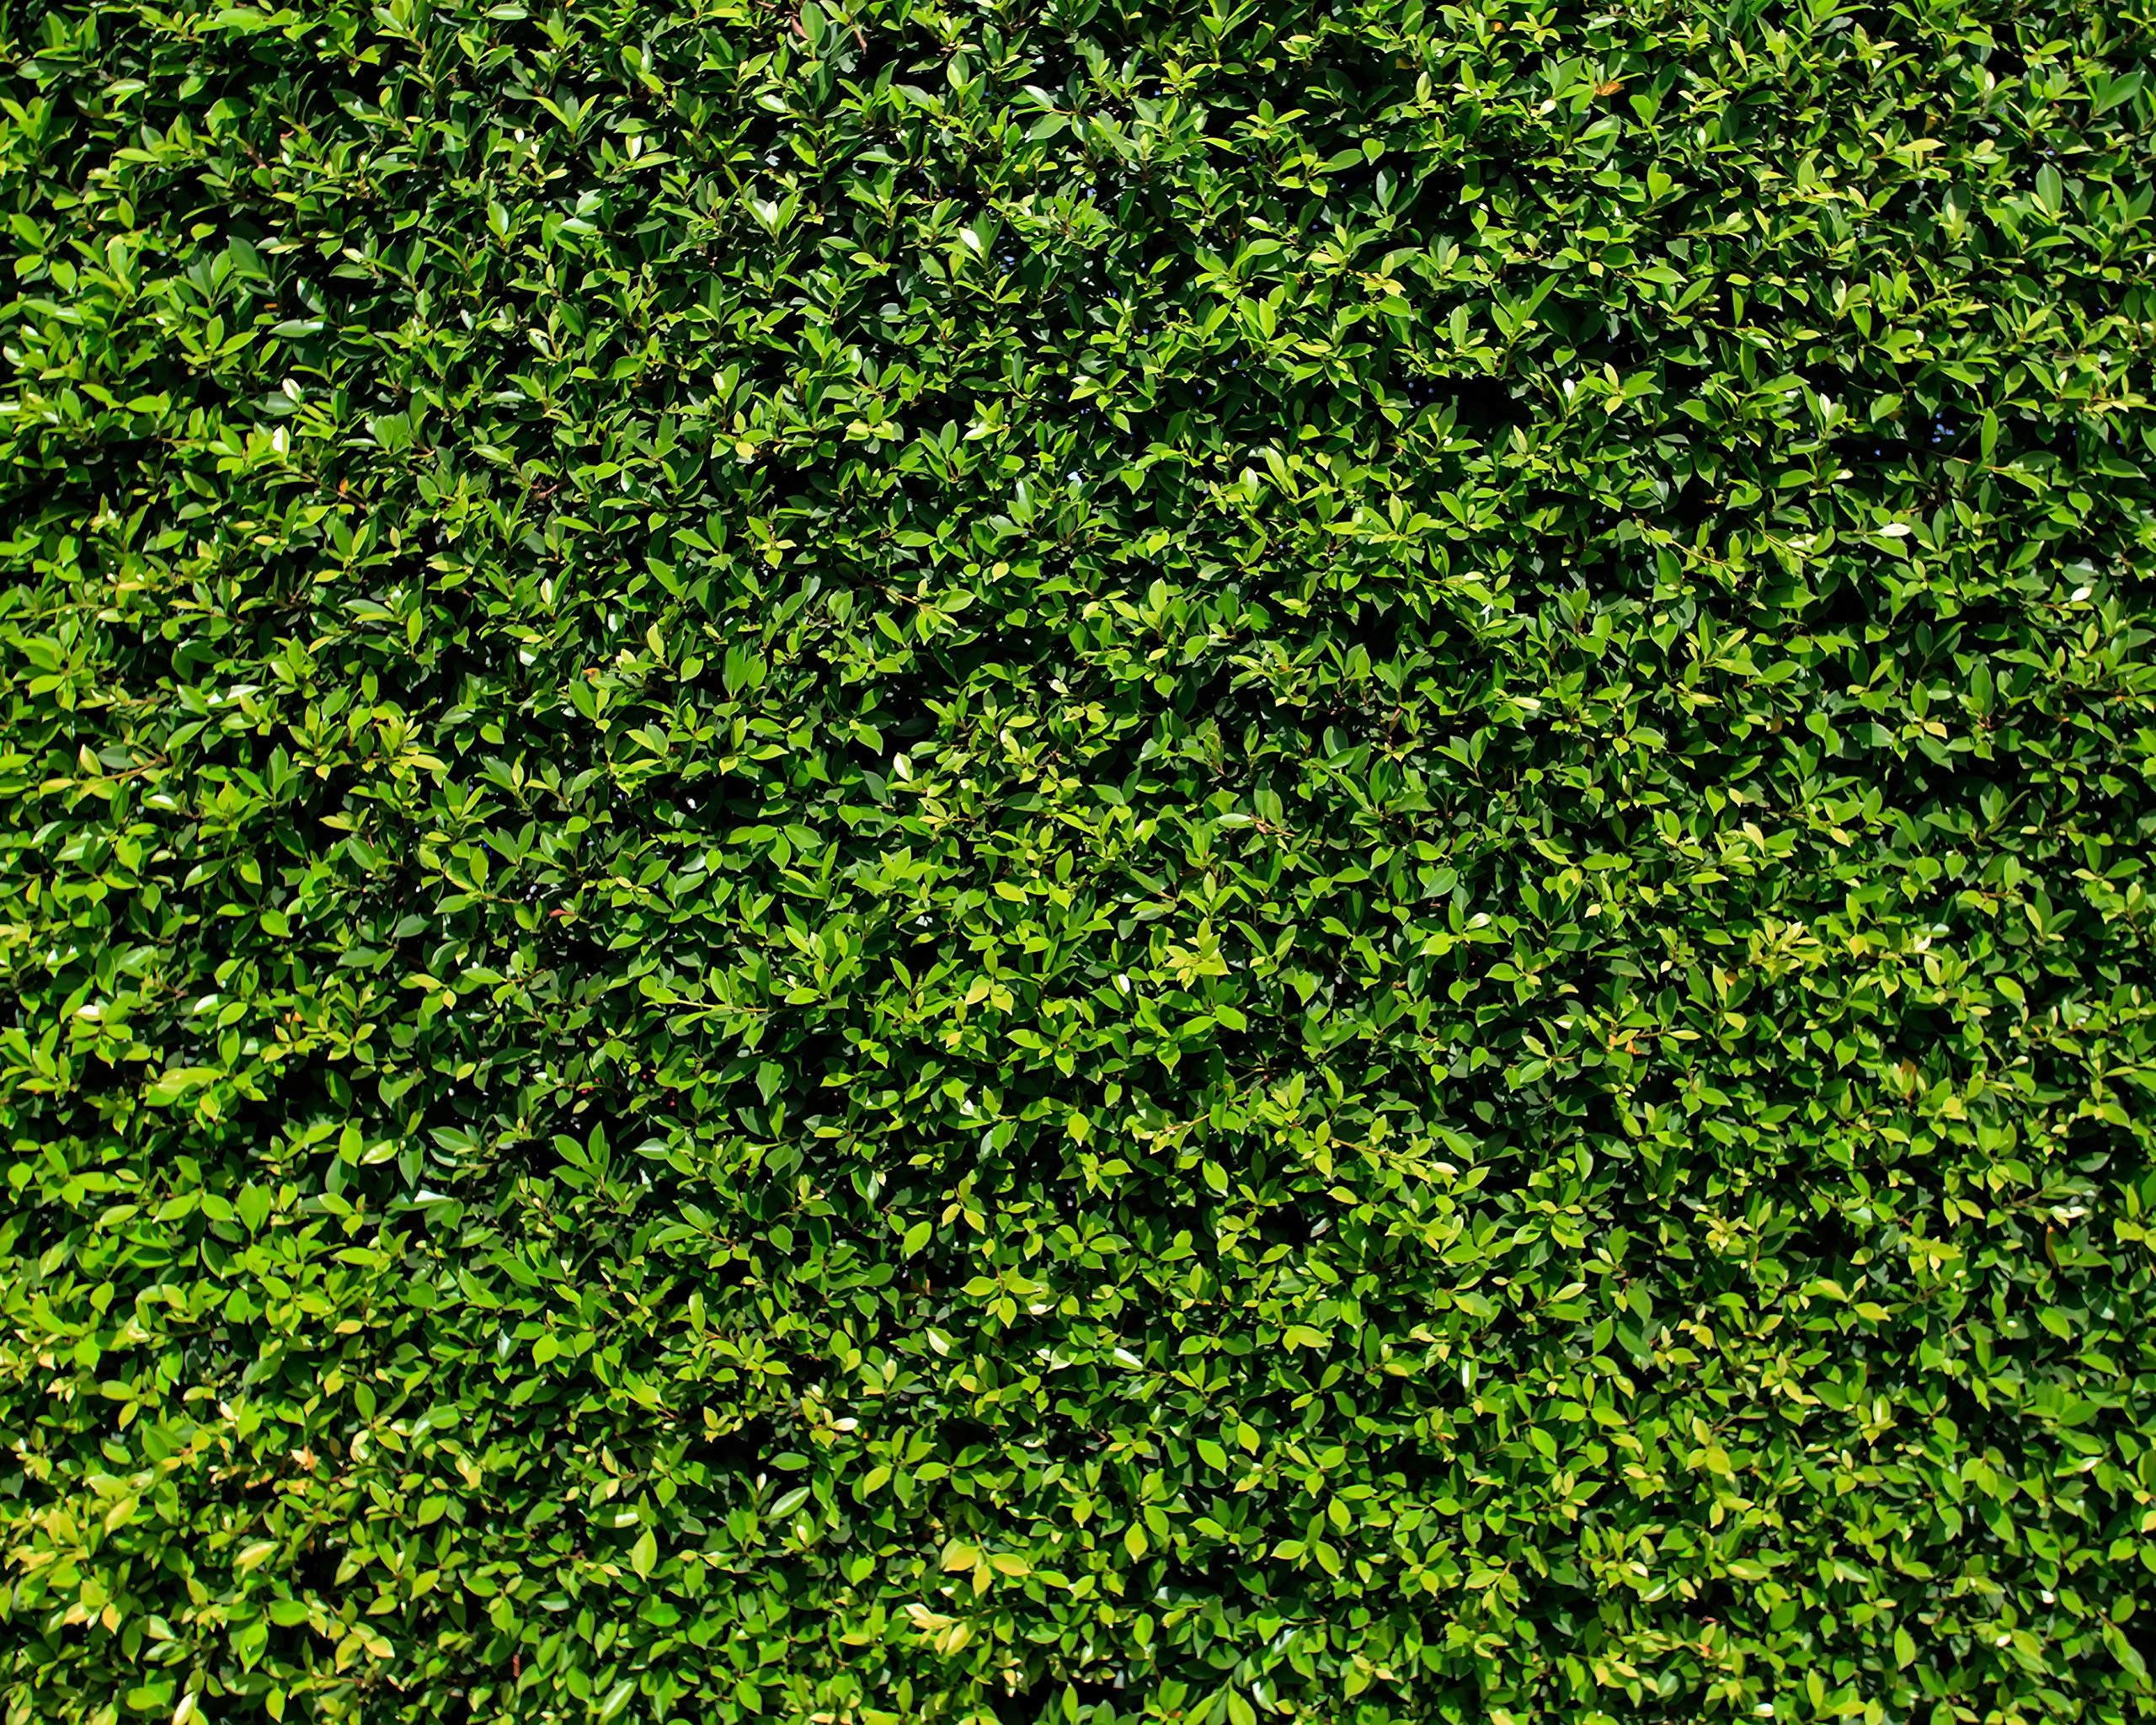 Green Grass Wall Backdrop Bush Lawn Wall Leafy Leaves Wall Birthday Party Decoration Wrinkle Free Cloth Printed Fabric Photography Background (G0742, 10' Wide by 8' Tall) by BestDrop